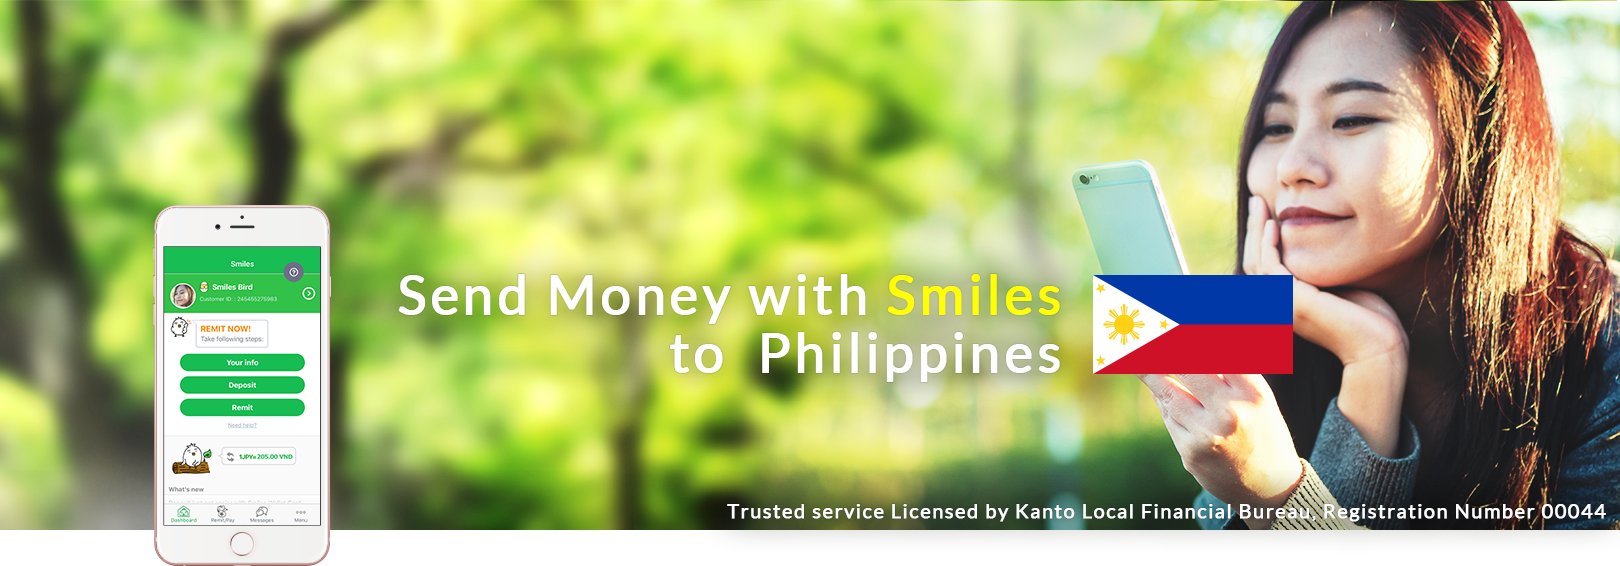 Send Money Smiles To Philippines Finally Your Global Remittance Center In Mobile